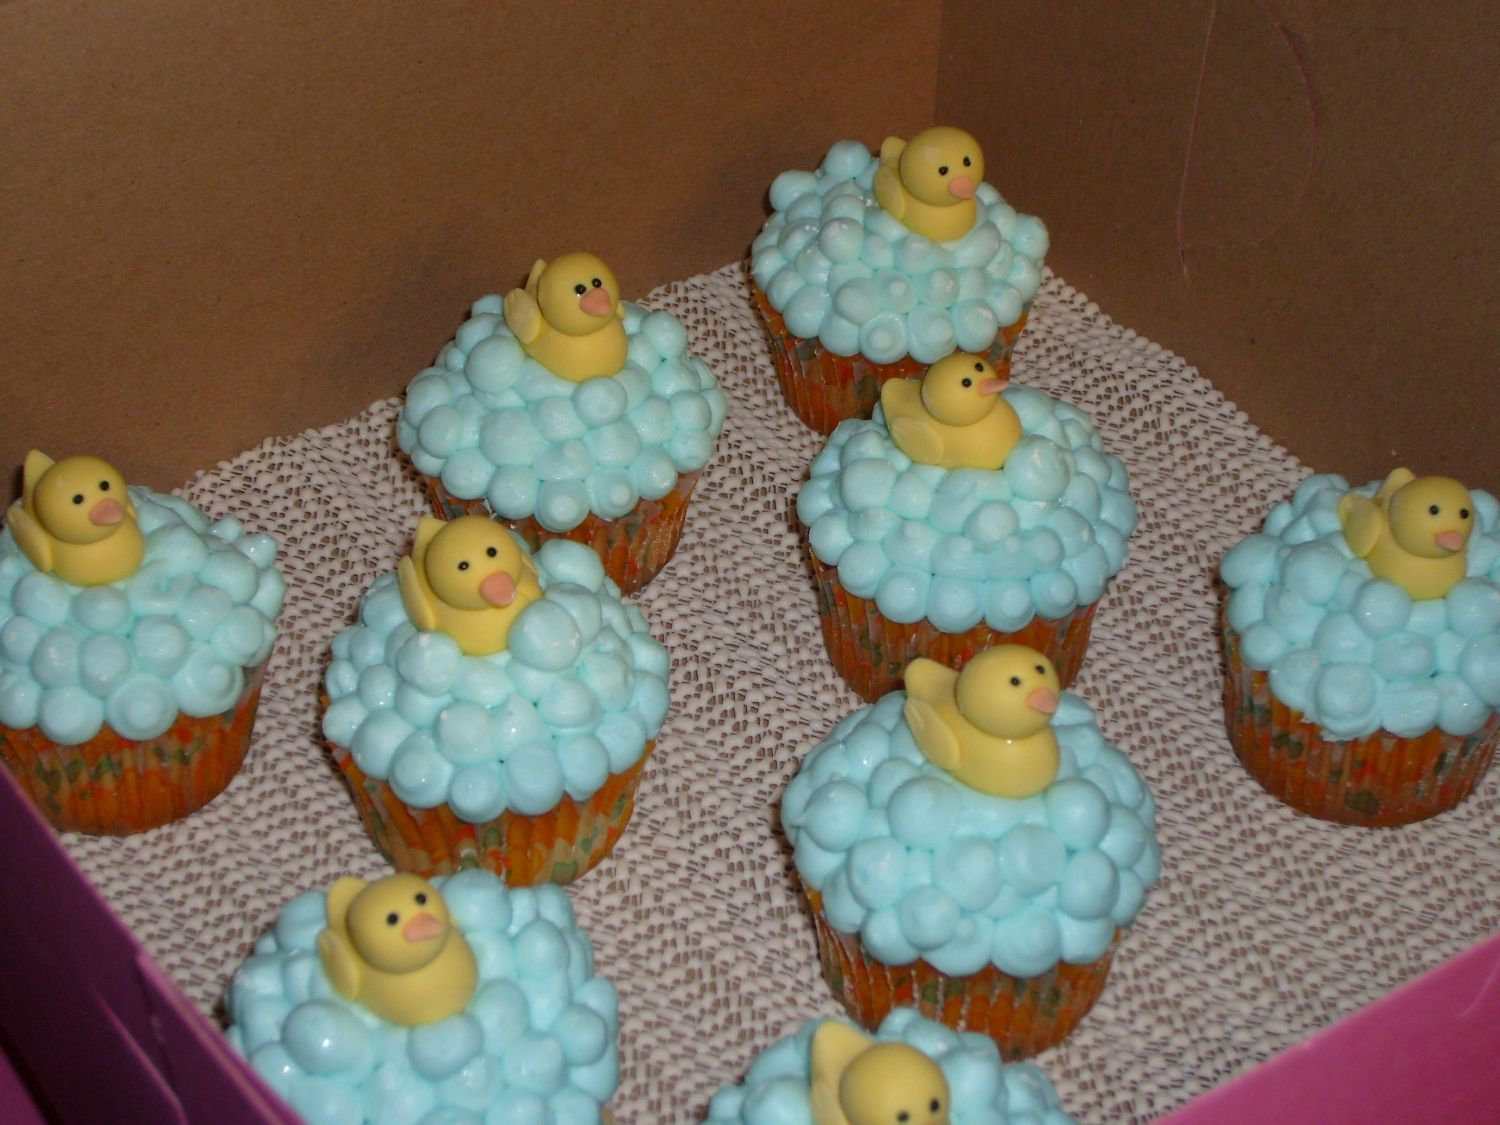 Baby Shower Cupcake Icing Ideas : Duck Cupcakes - Cupcakes with buttercream icing and ...